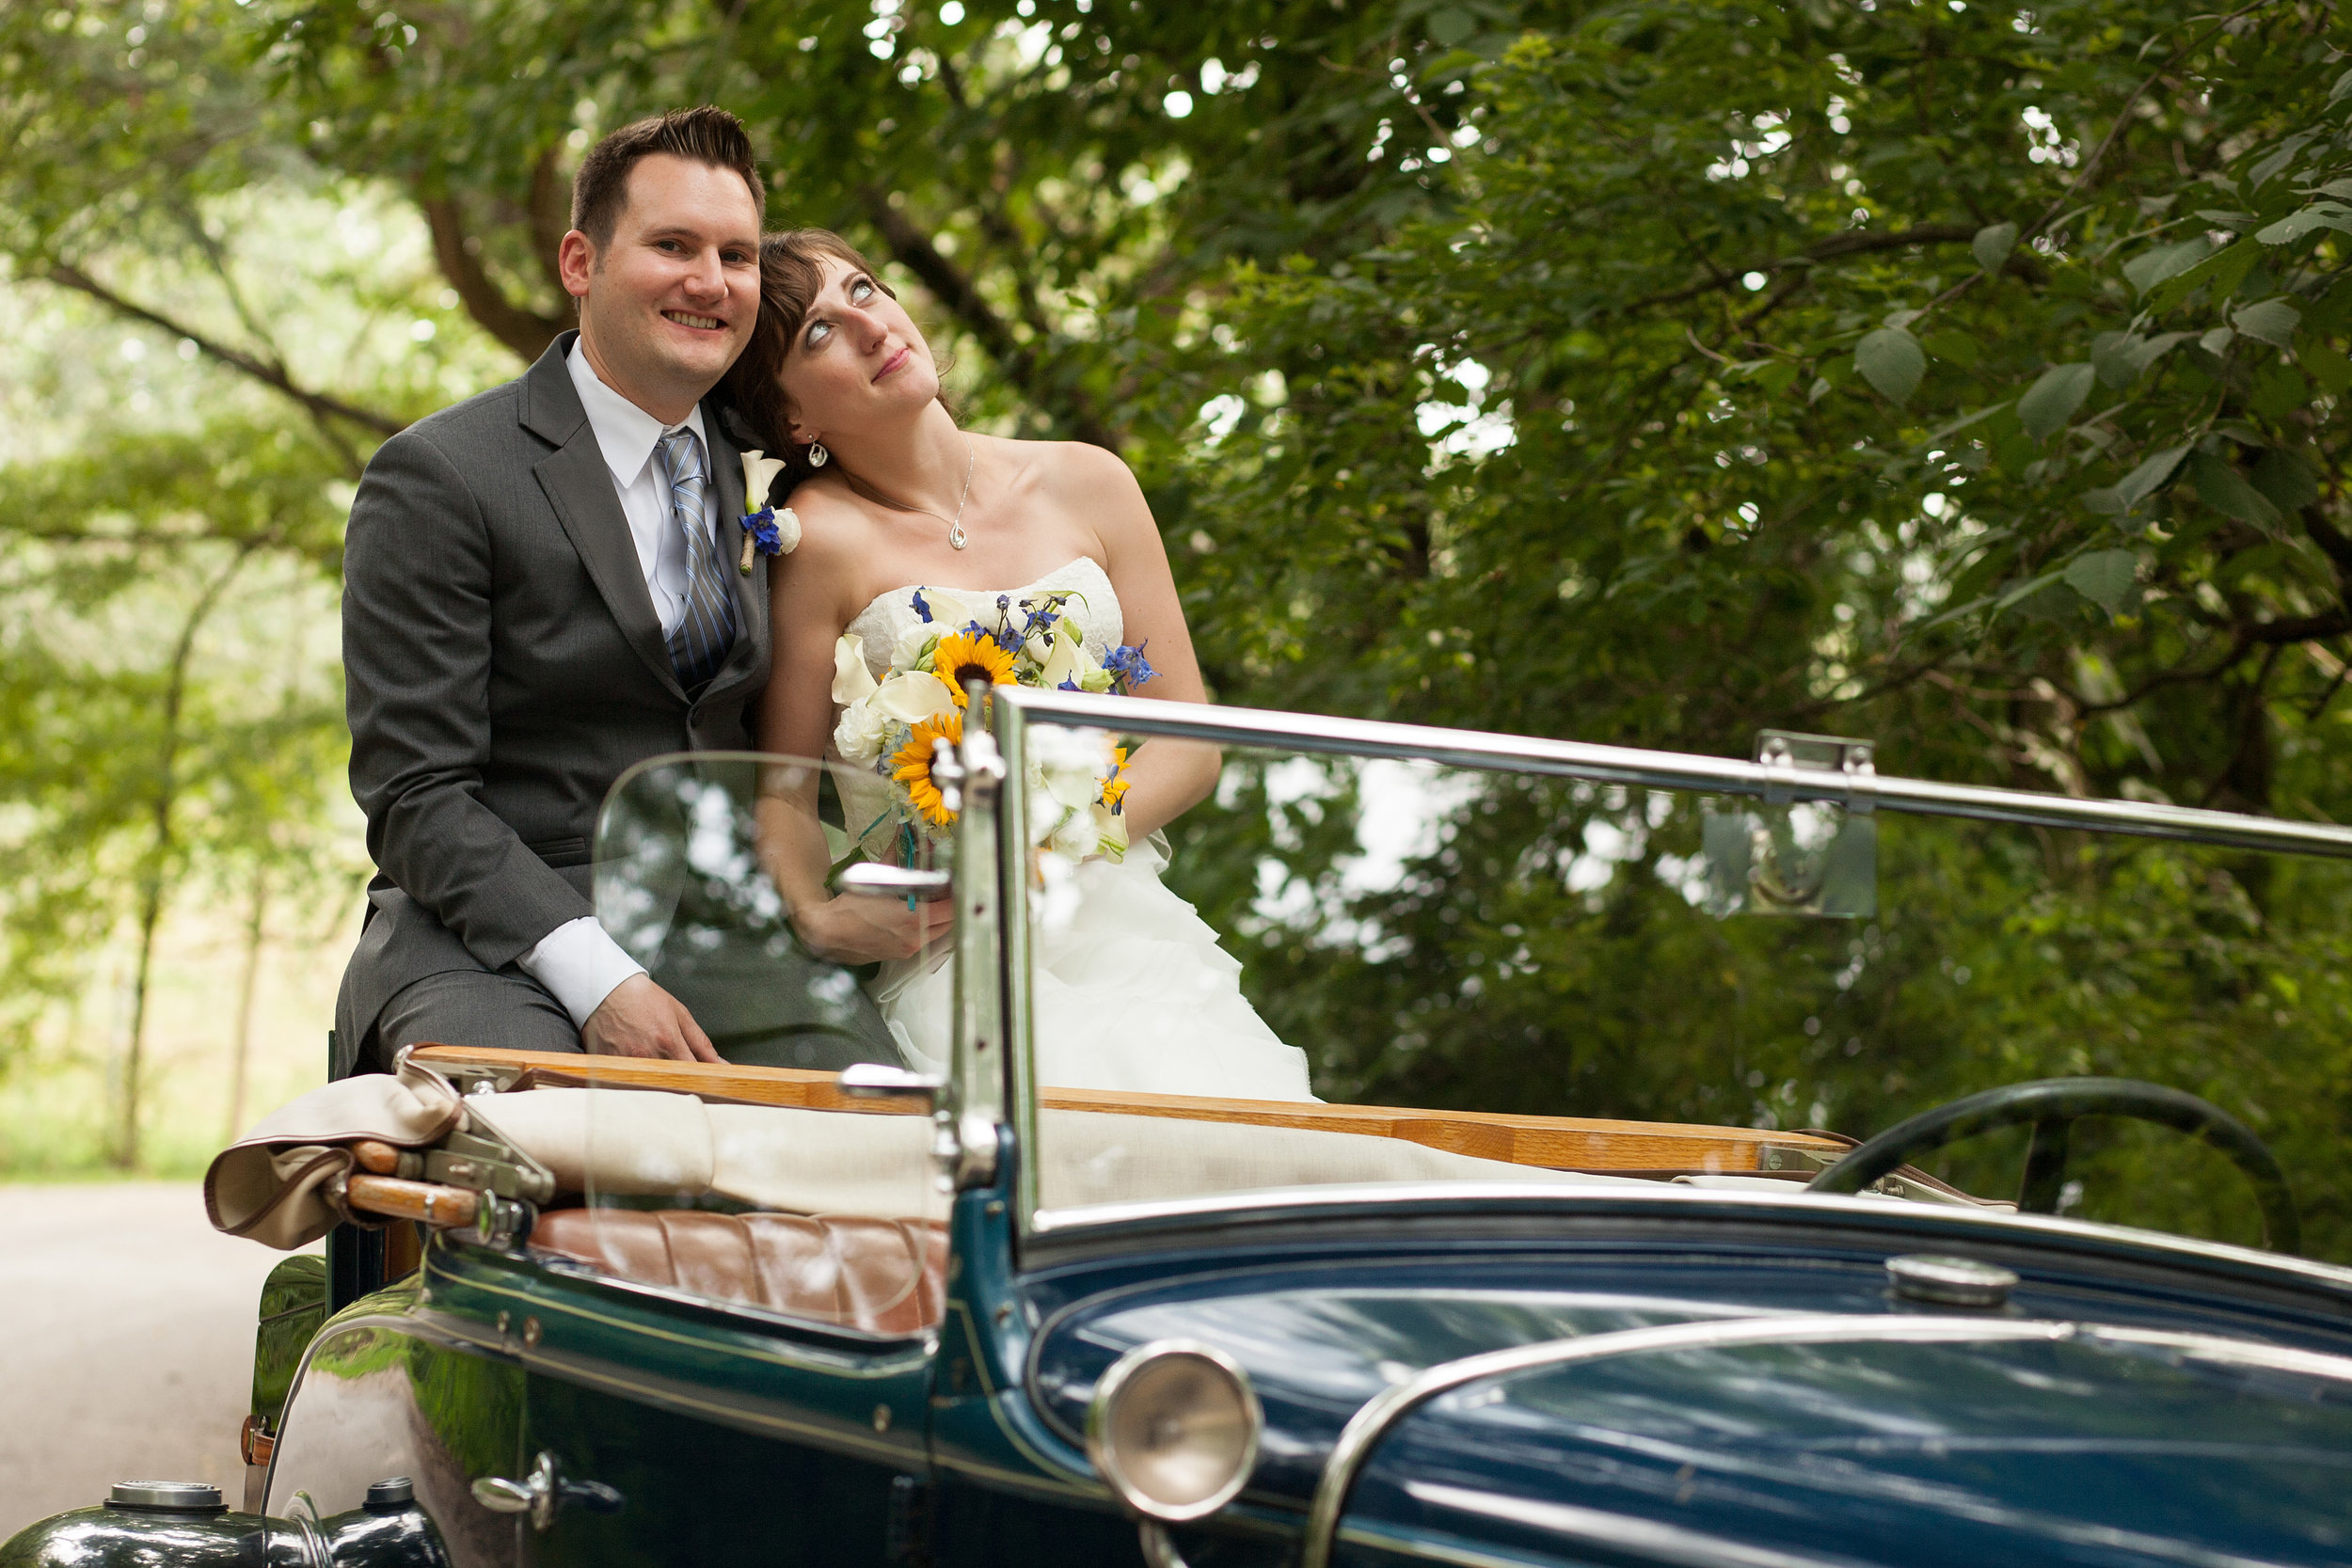 2013_Brent_Melissa_Wedding_Pitman-251.jpg